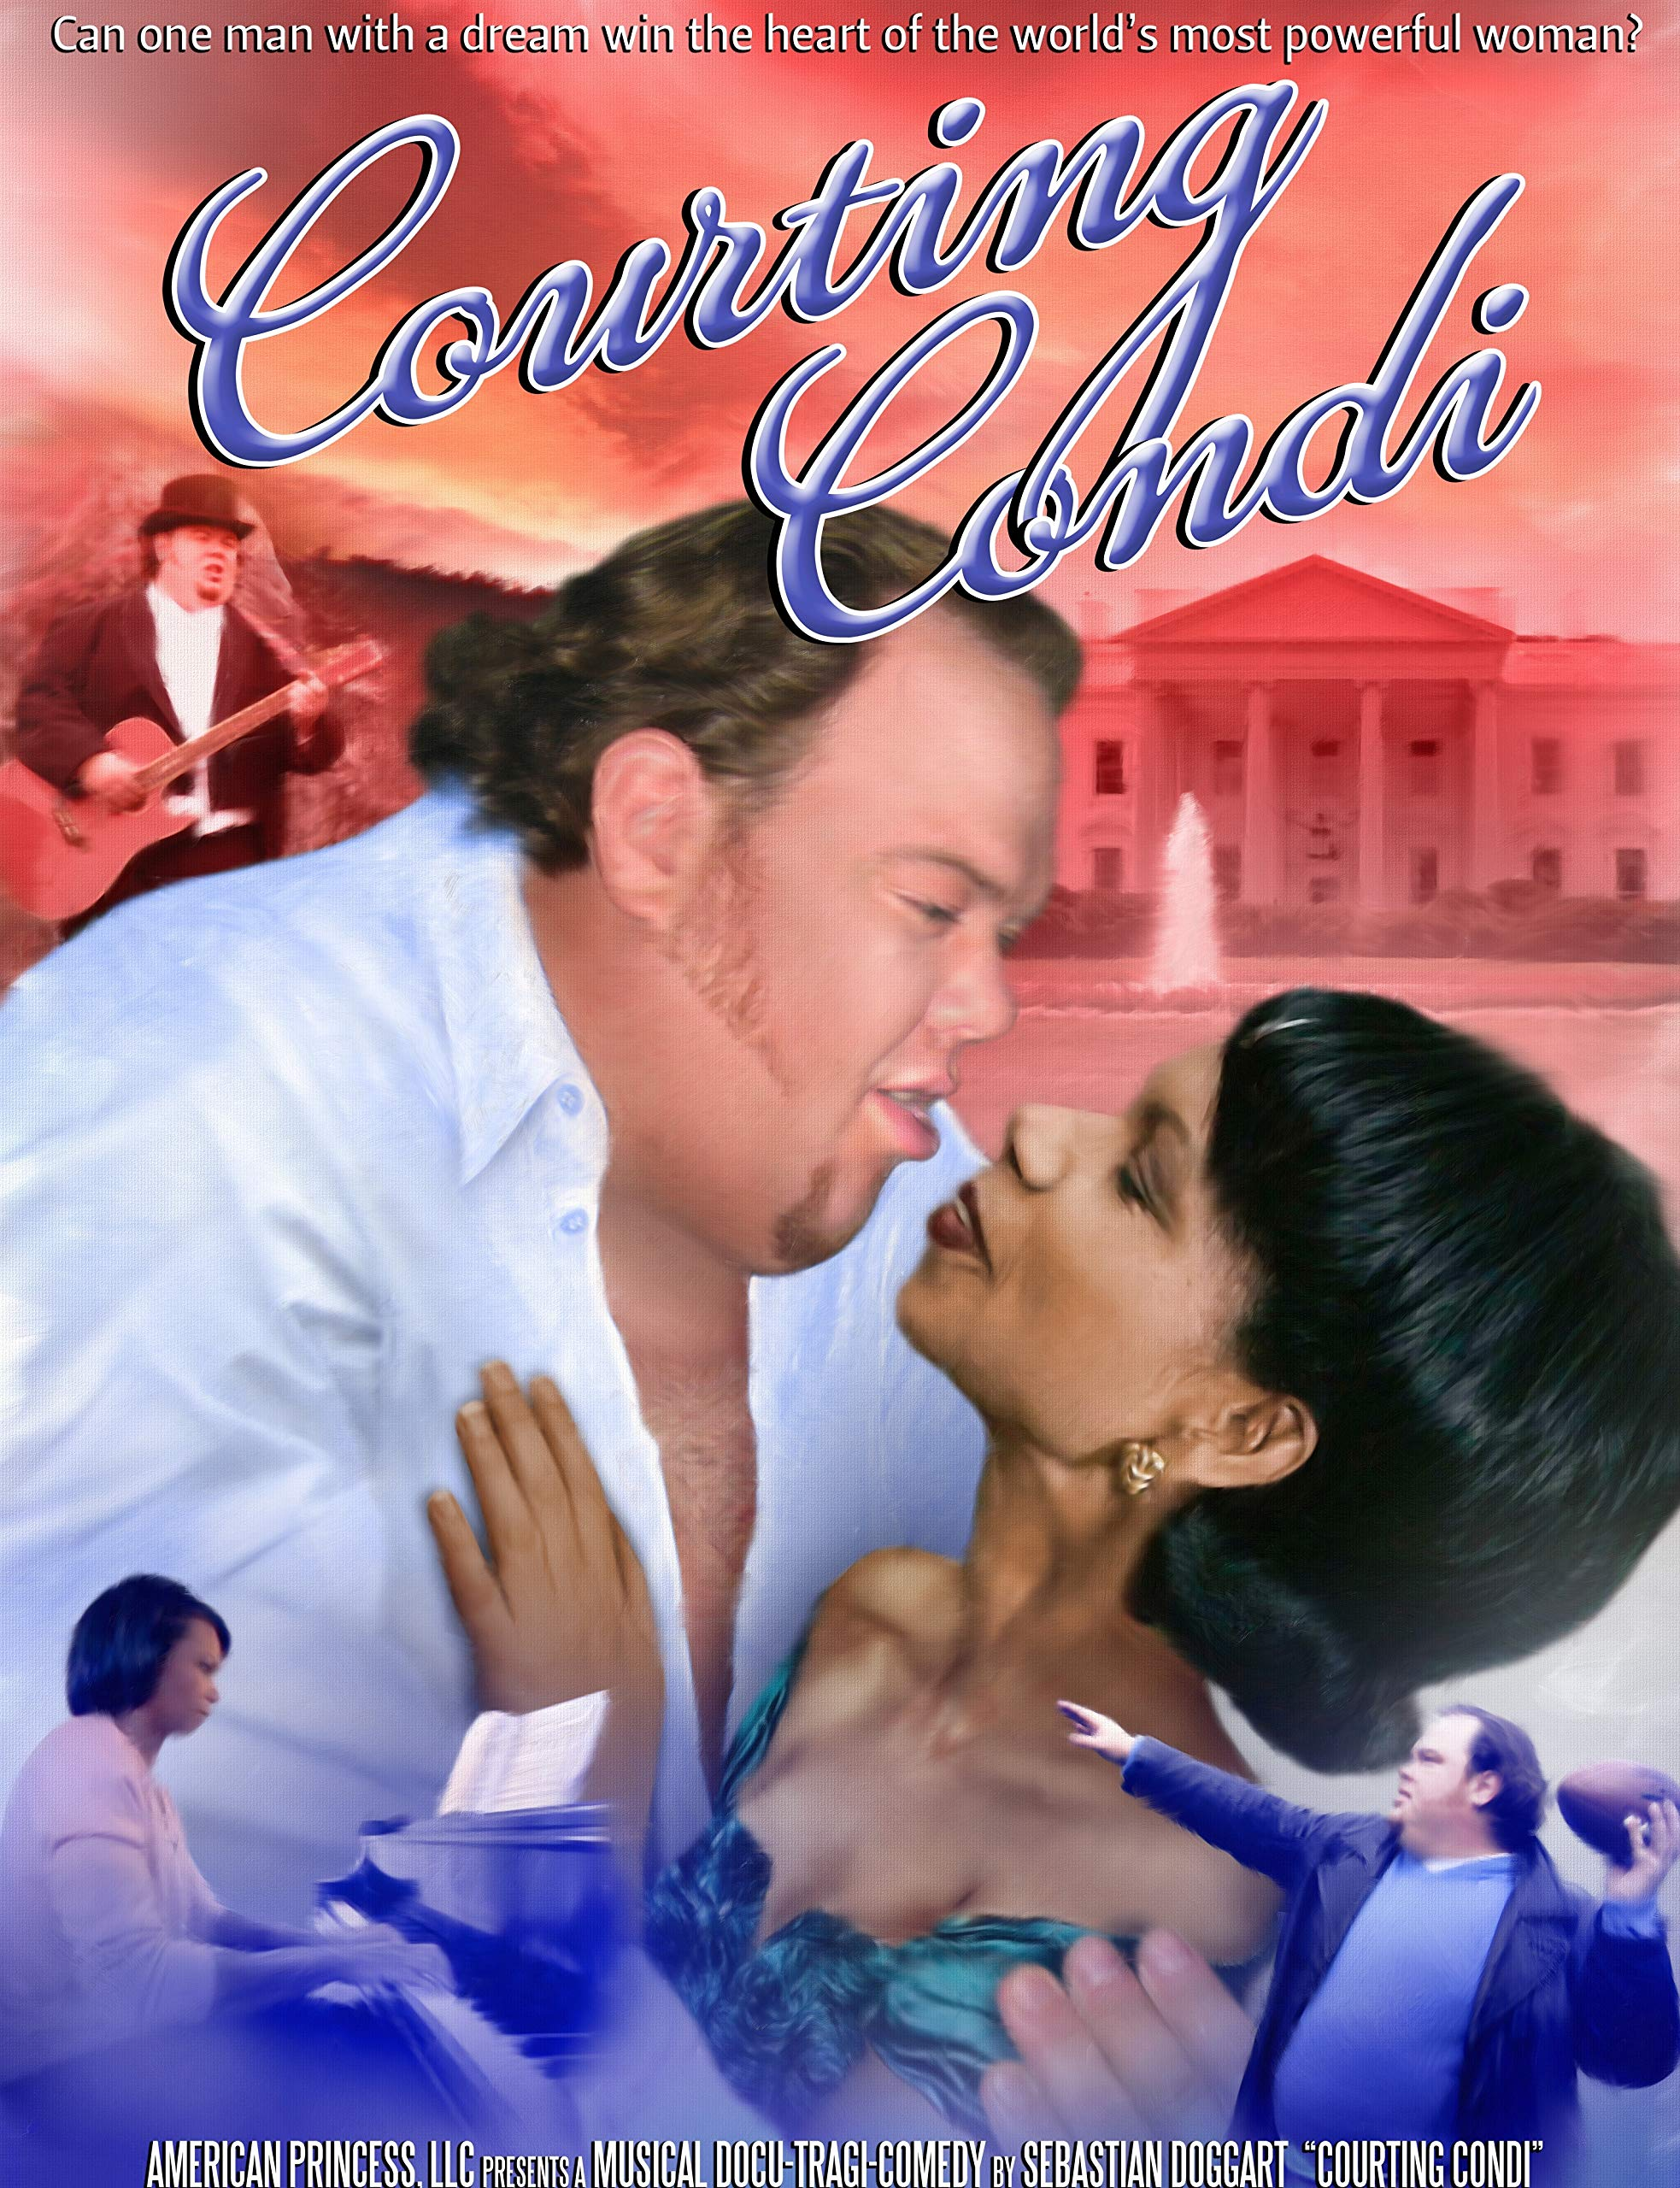 Courting Condi